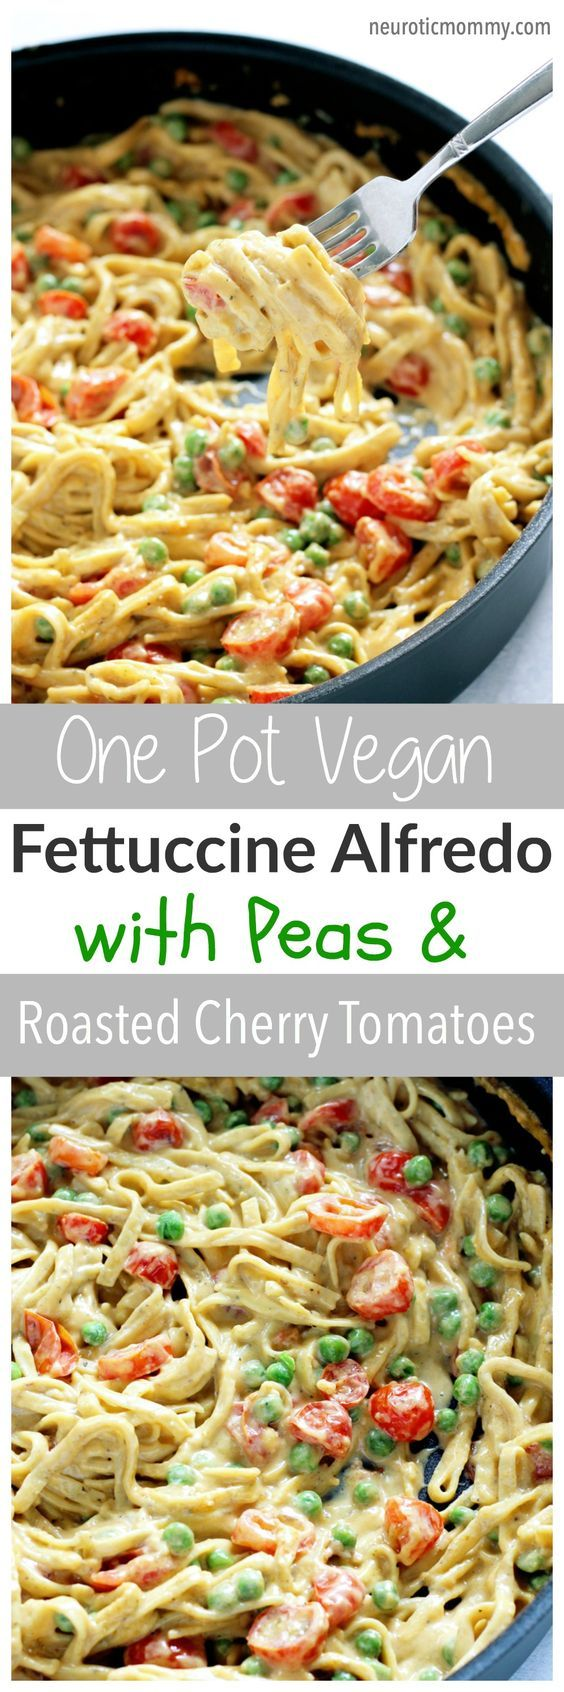 One Pot Vegan Fettuccine Alfredo with Peas and Roasted Cherry Tomatoes - Creamy healthy deliciousness all in one pot. NeuroticMommy.com #vegan #dinner #healthy